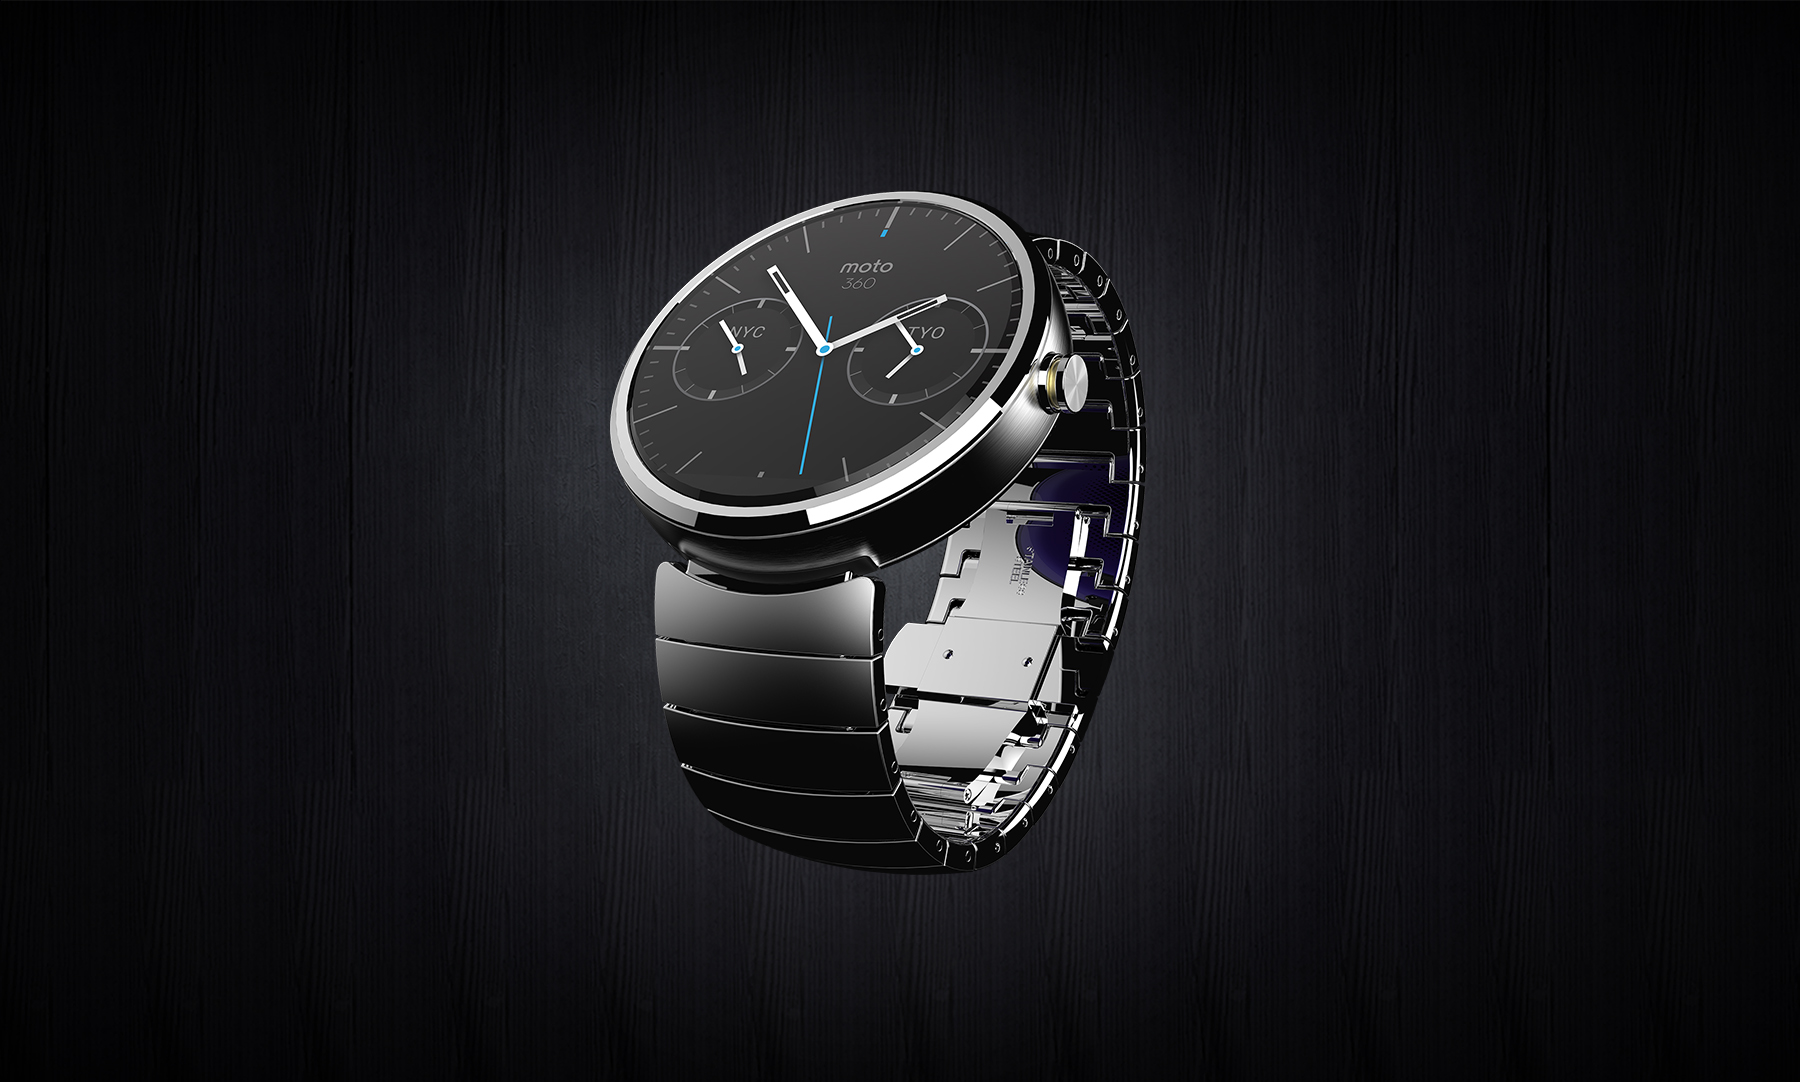 http://cdn1.tnwcdn.com/wp-content/blogs.dir/1/files/2014/03/Moto360_Hero_full-view_Metal_RGB.jpg